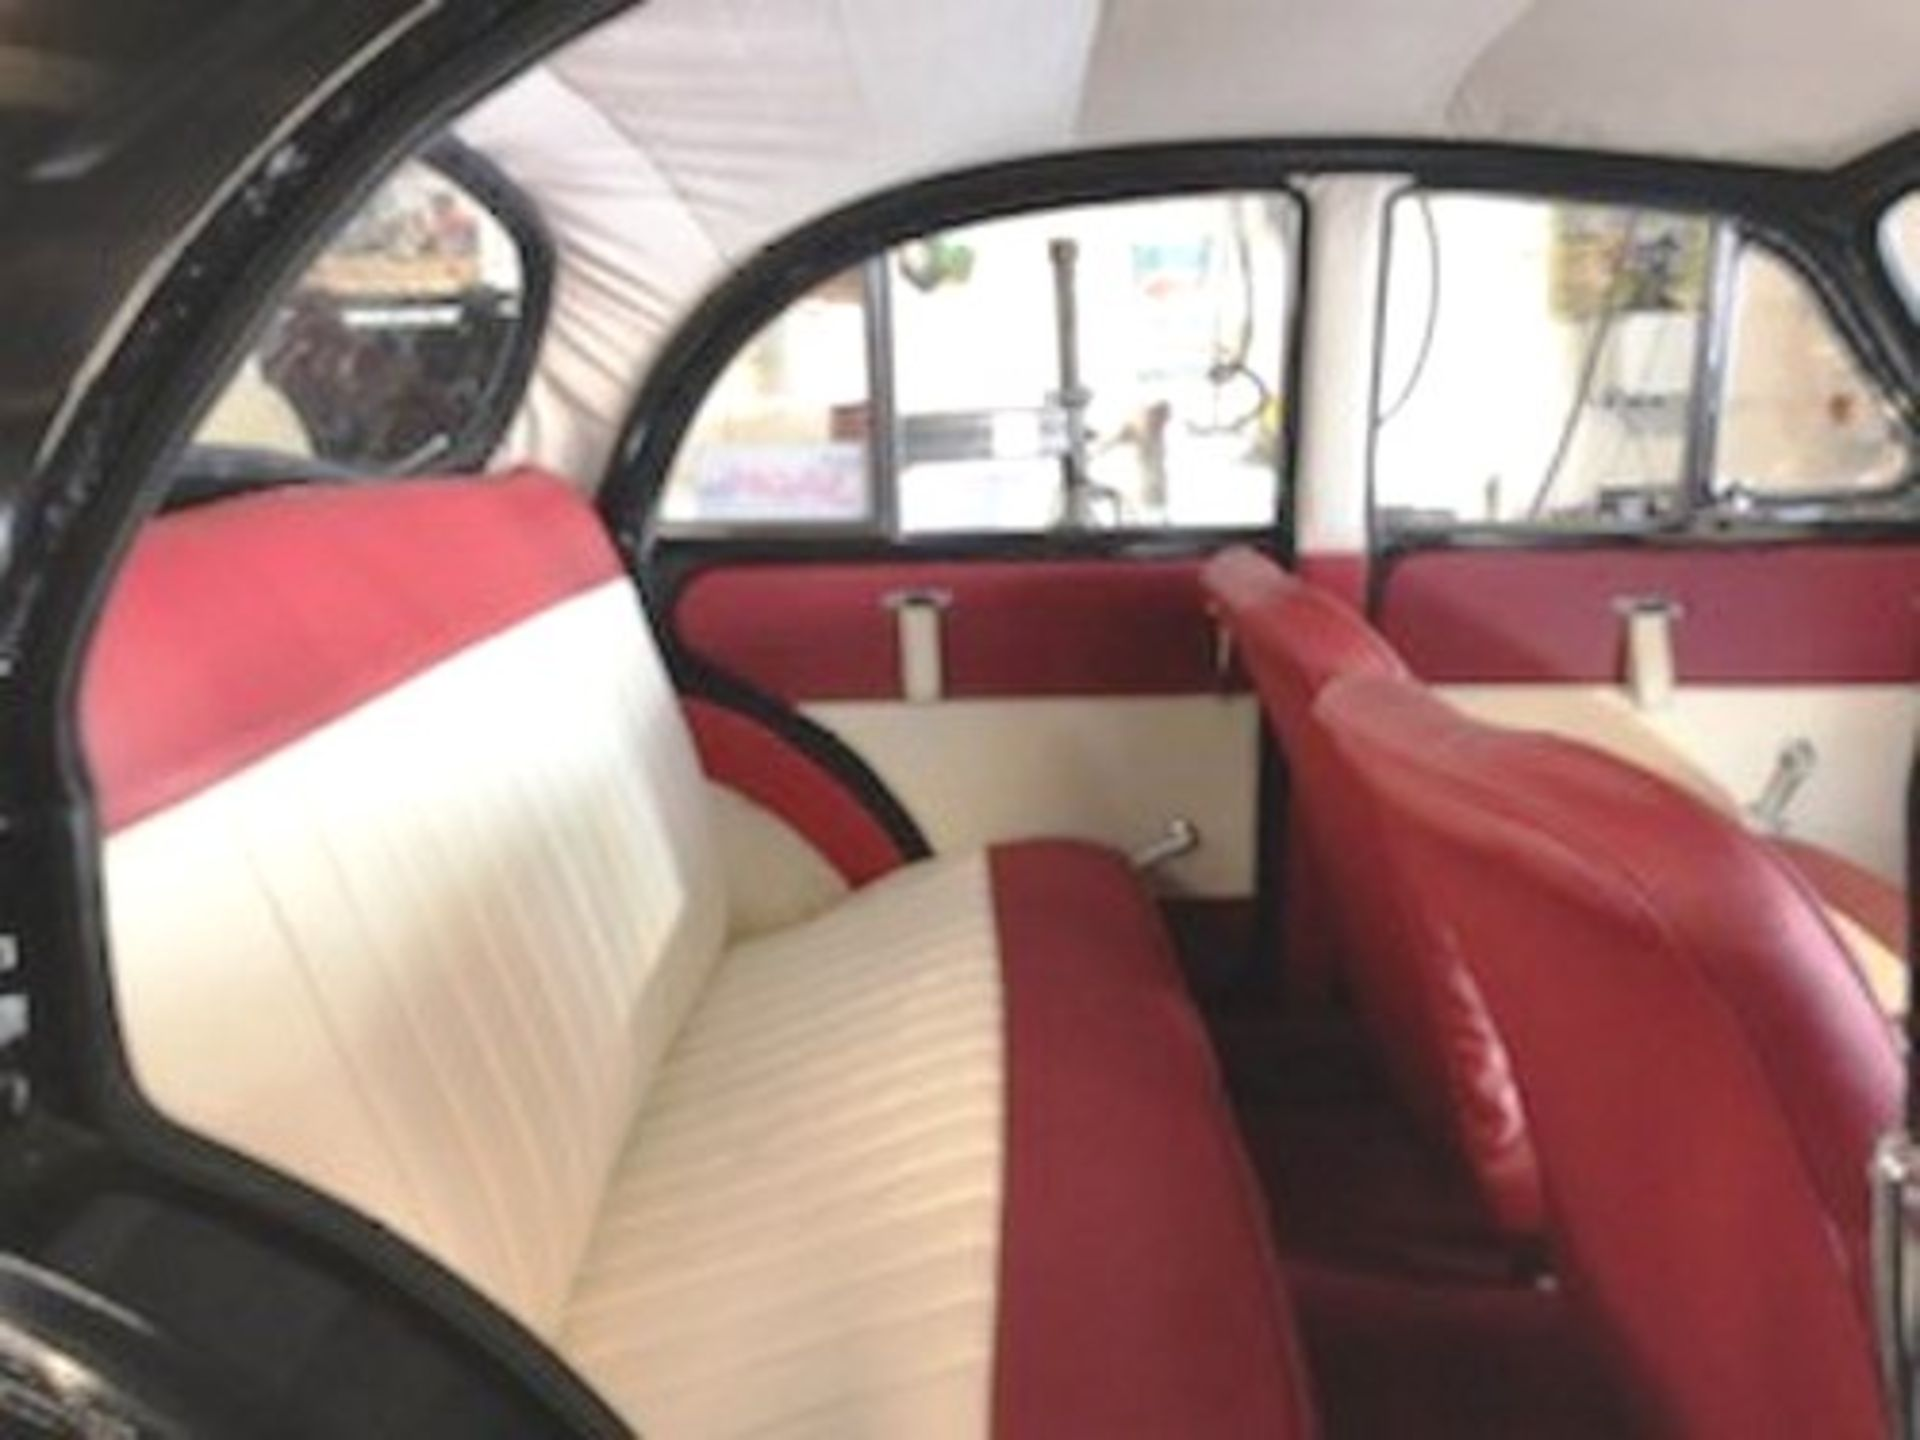 1964 Morris Minor 1000 in original black. The car has been restored with new flooring and vinyl - Image 8 of 16